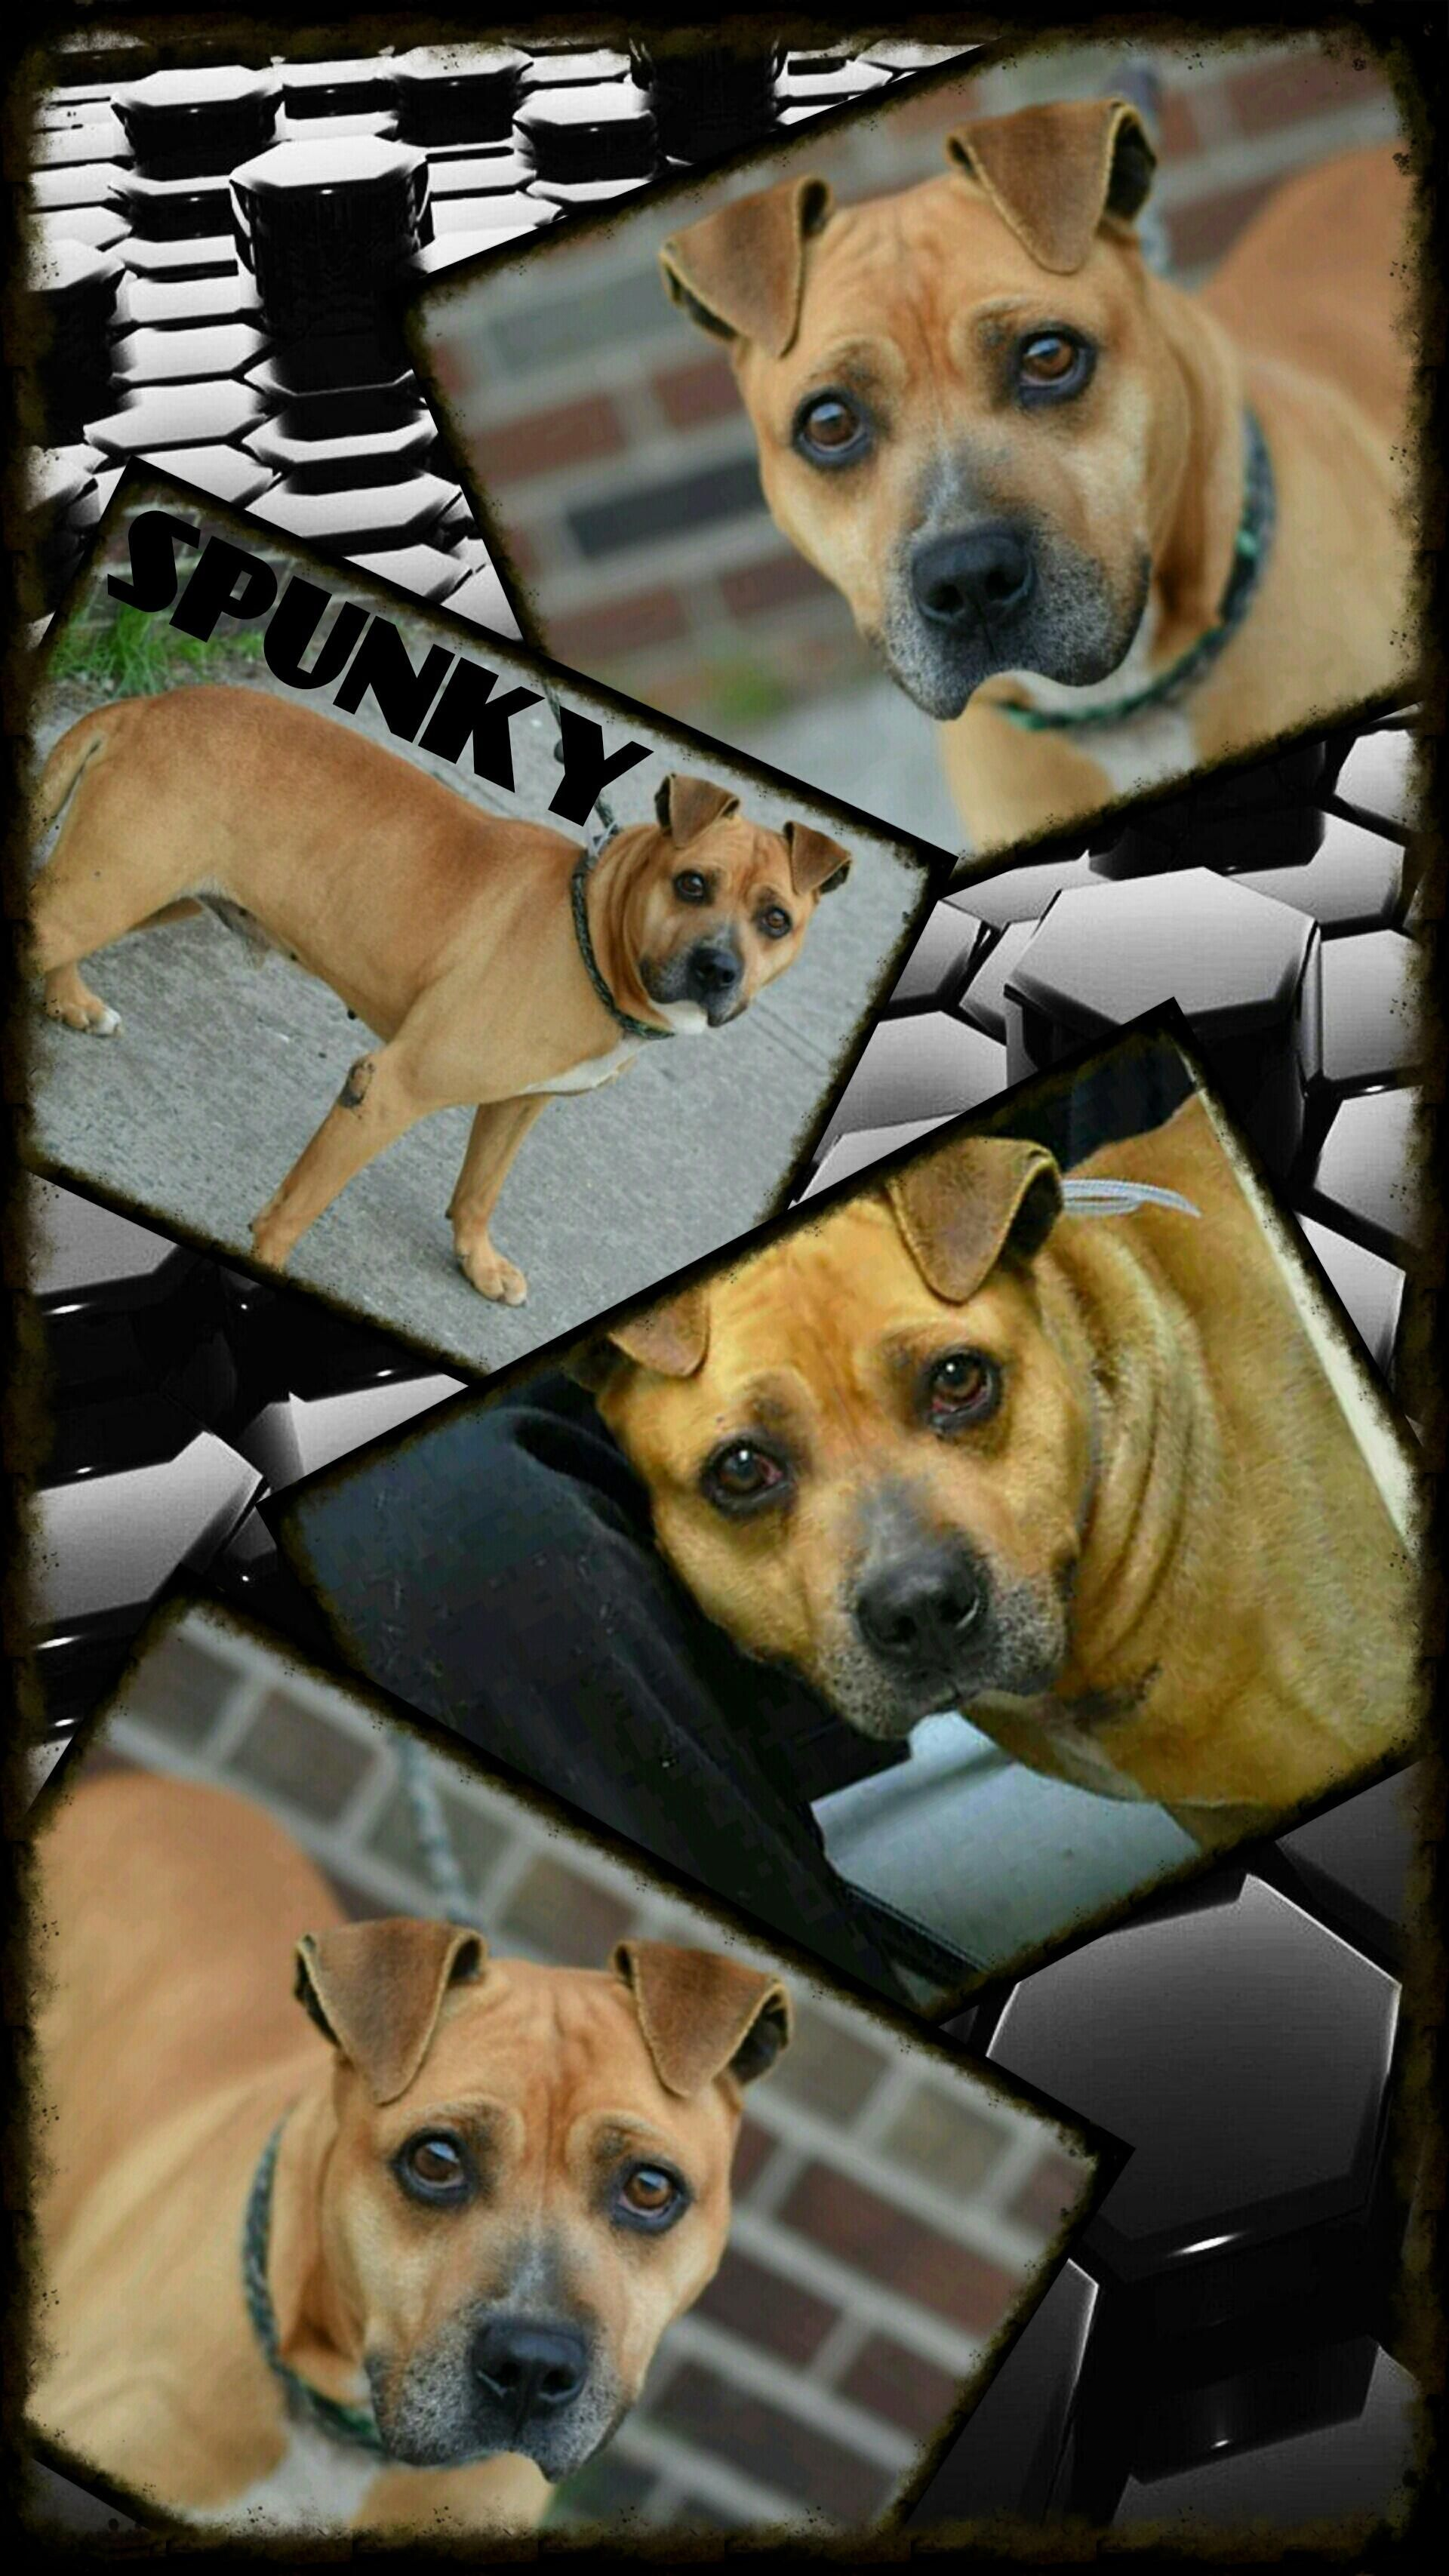 SUPER URGENT TO BE DESTROYED – 05/01/15 Brooklyn Center-P My name is SPUNKY. My Animal ID # is A1034088. I am a male brown and black pit bull mix. The shelter thinks I am about 3 YEARS old. I came in the shelter as a OWNER SUR on 04/23/2015 from NY 11691, owner surrender reason stated was LLORDPRIVA. http://nycdogs.urgentpodr.org/spunky-a1034088/